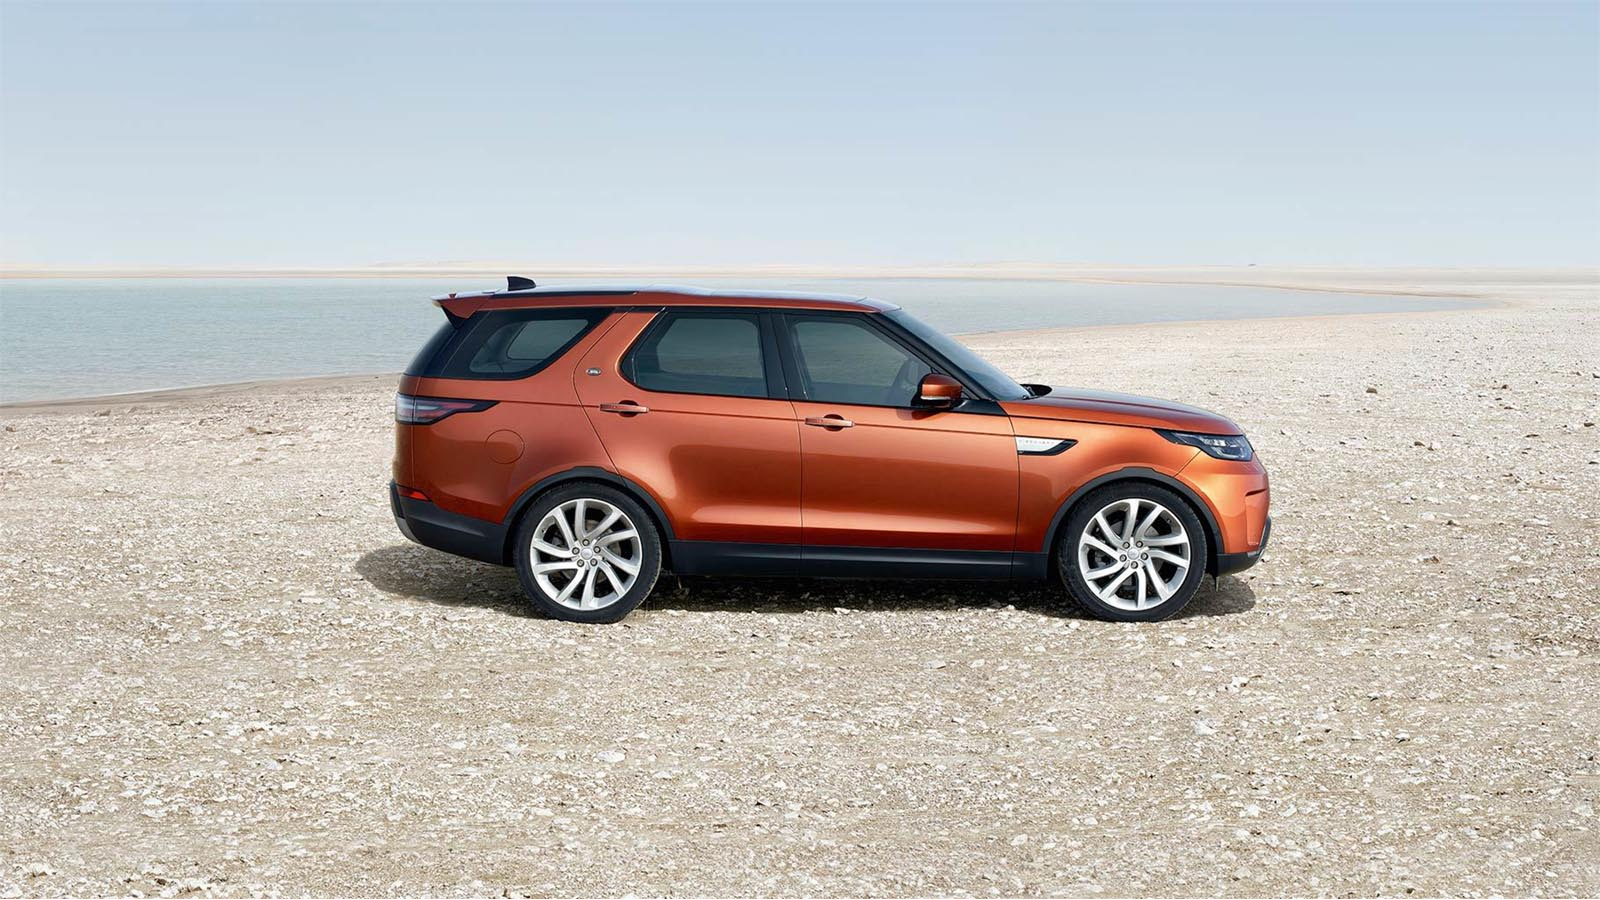 Land Rover Discovery 2017 4x4 Off-Road SUV